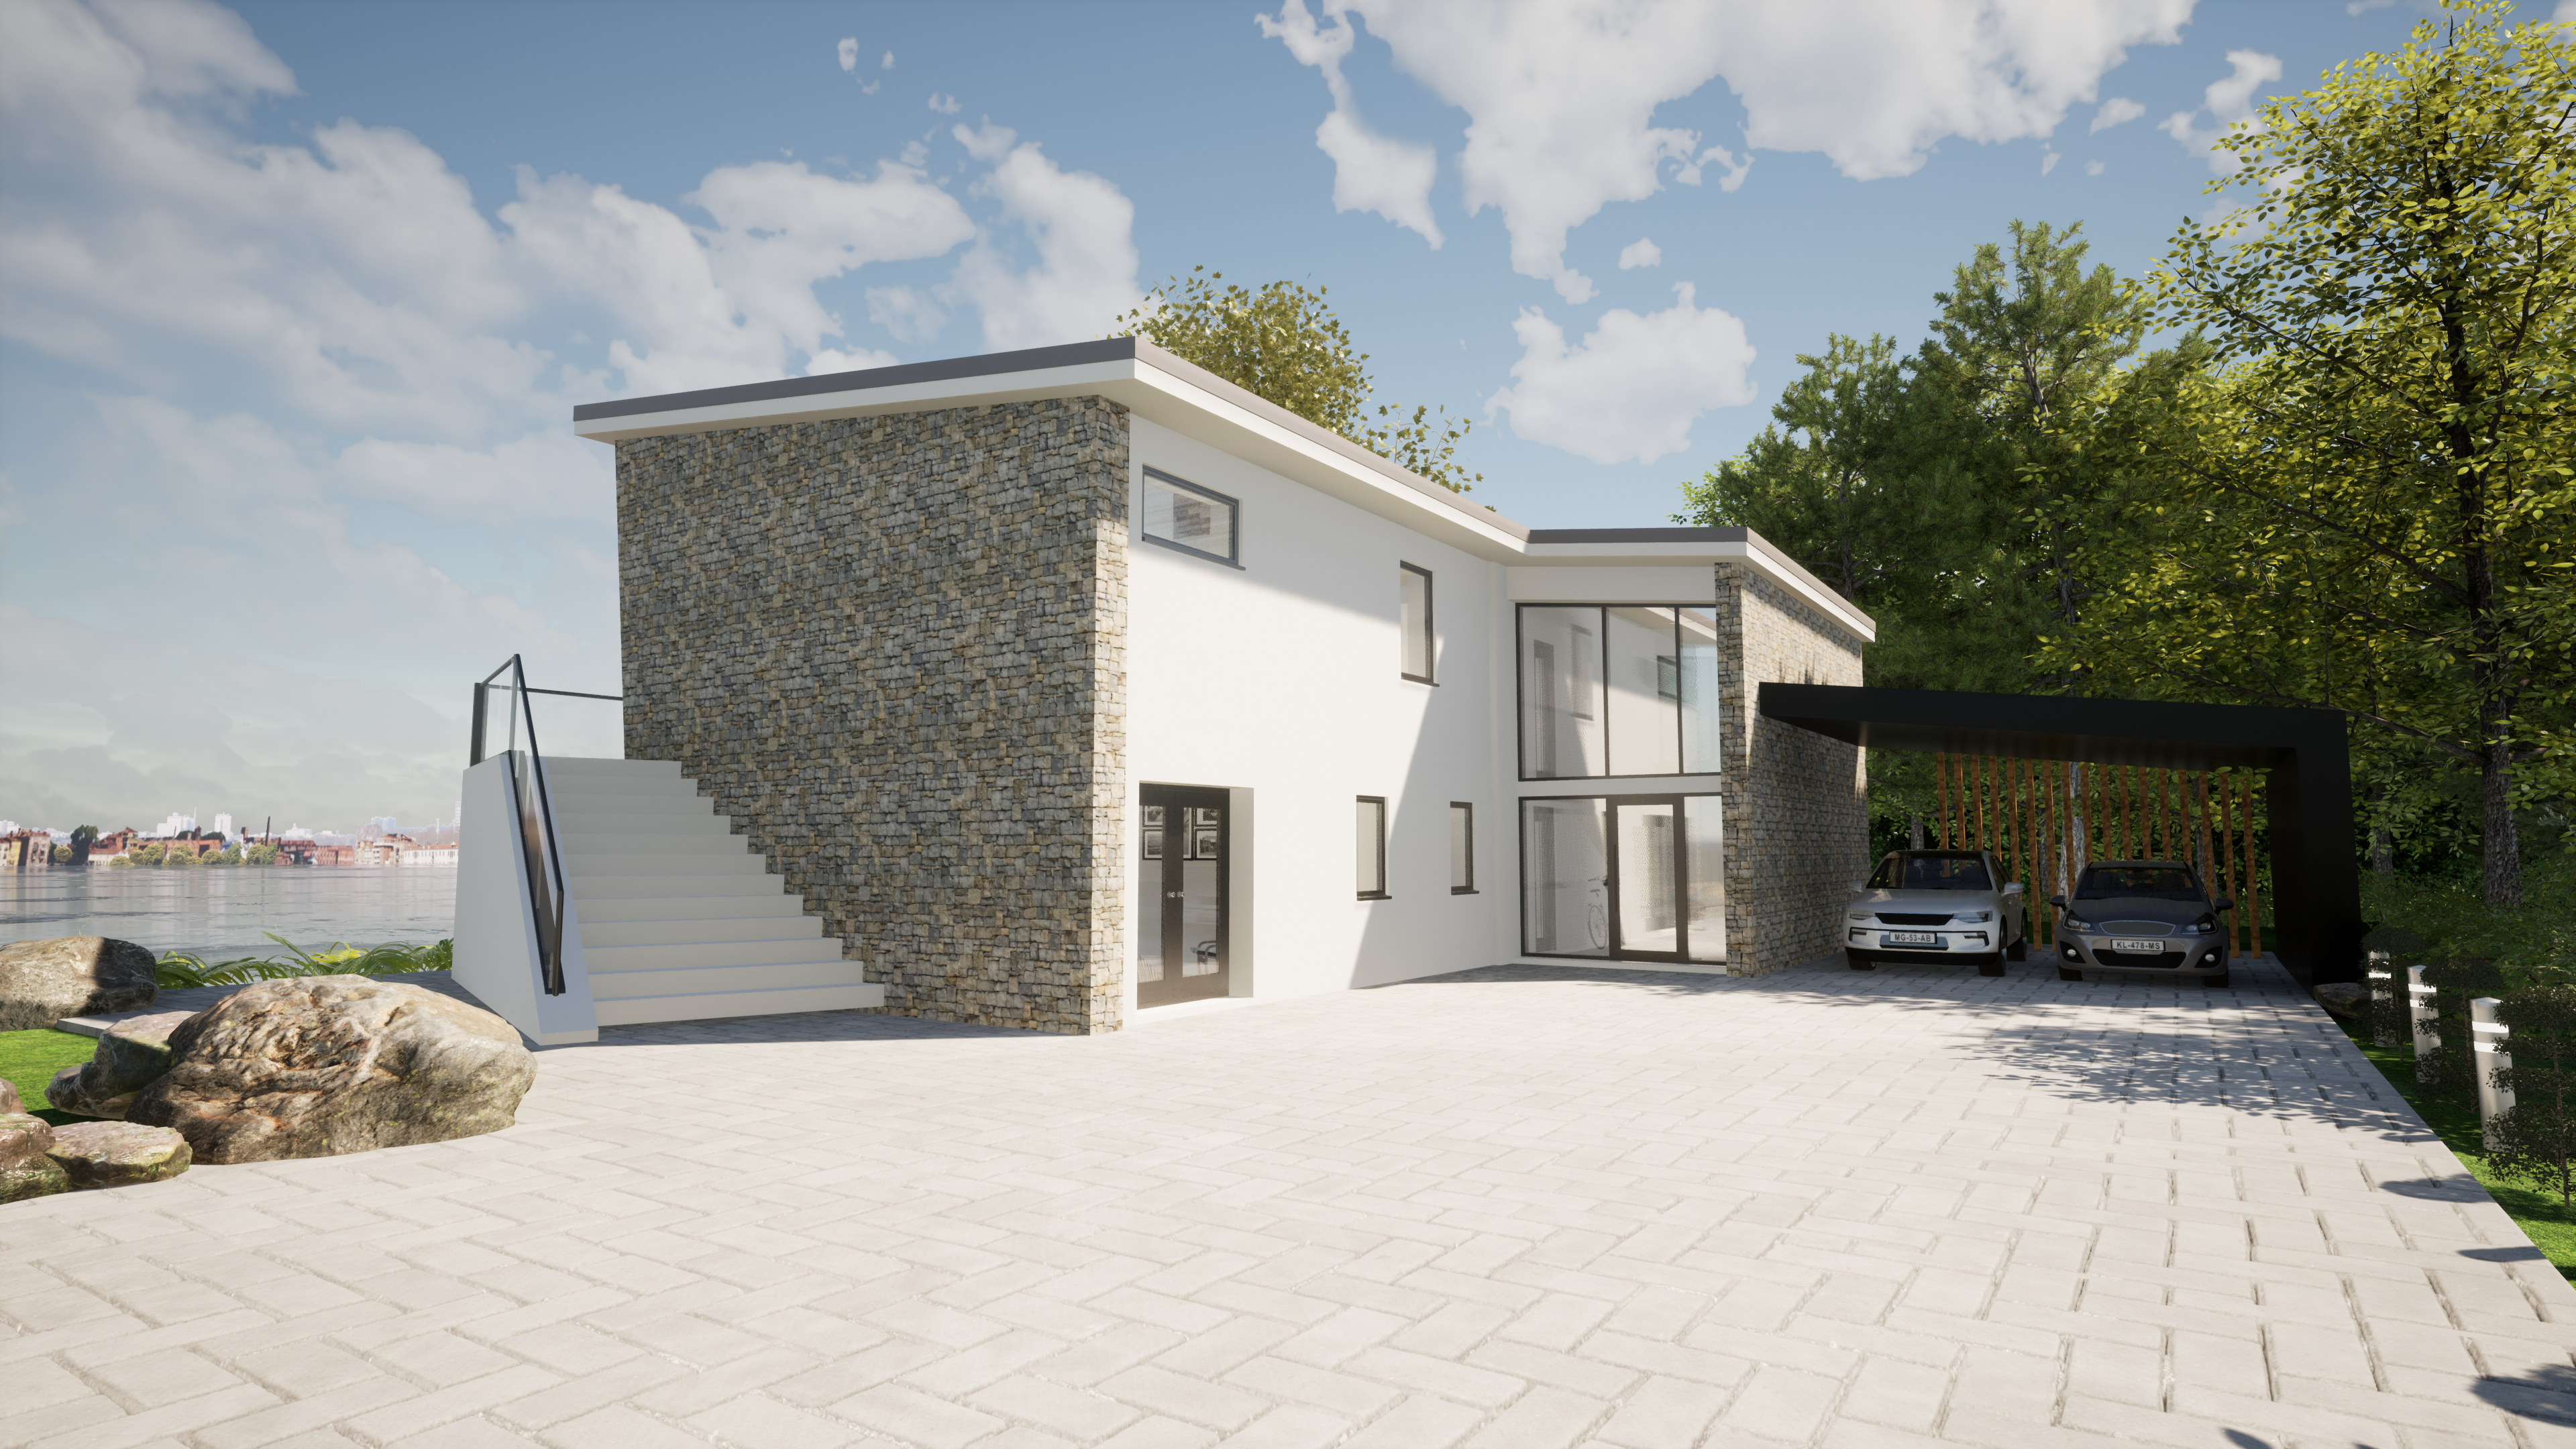 Bourdeau, France – Residential Project